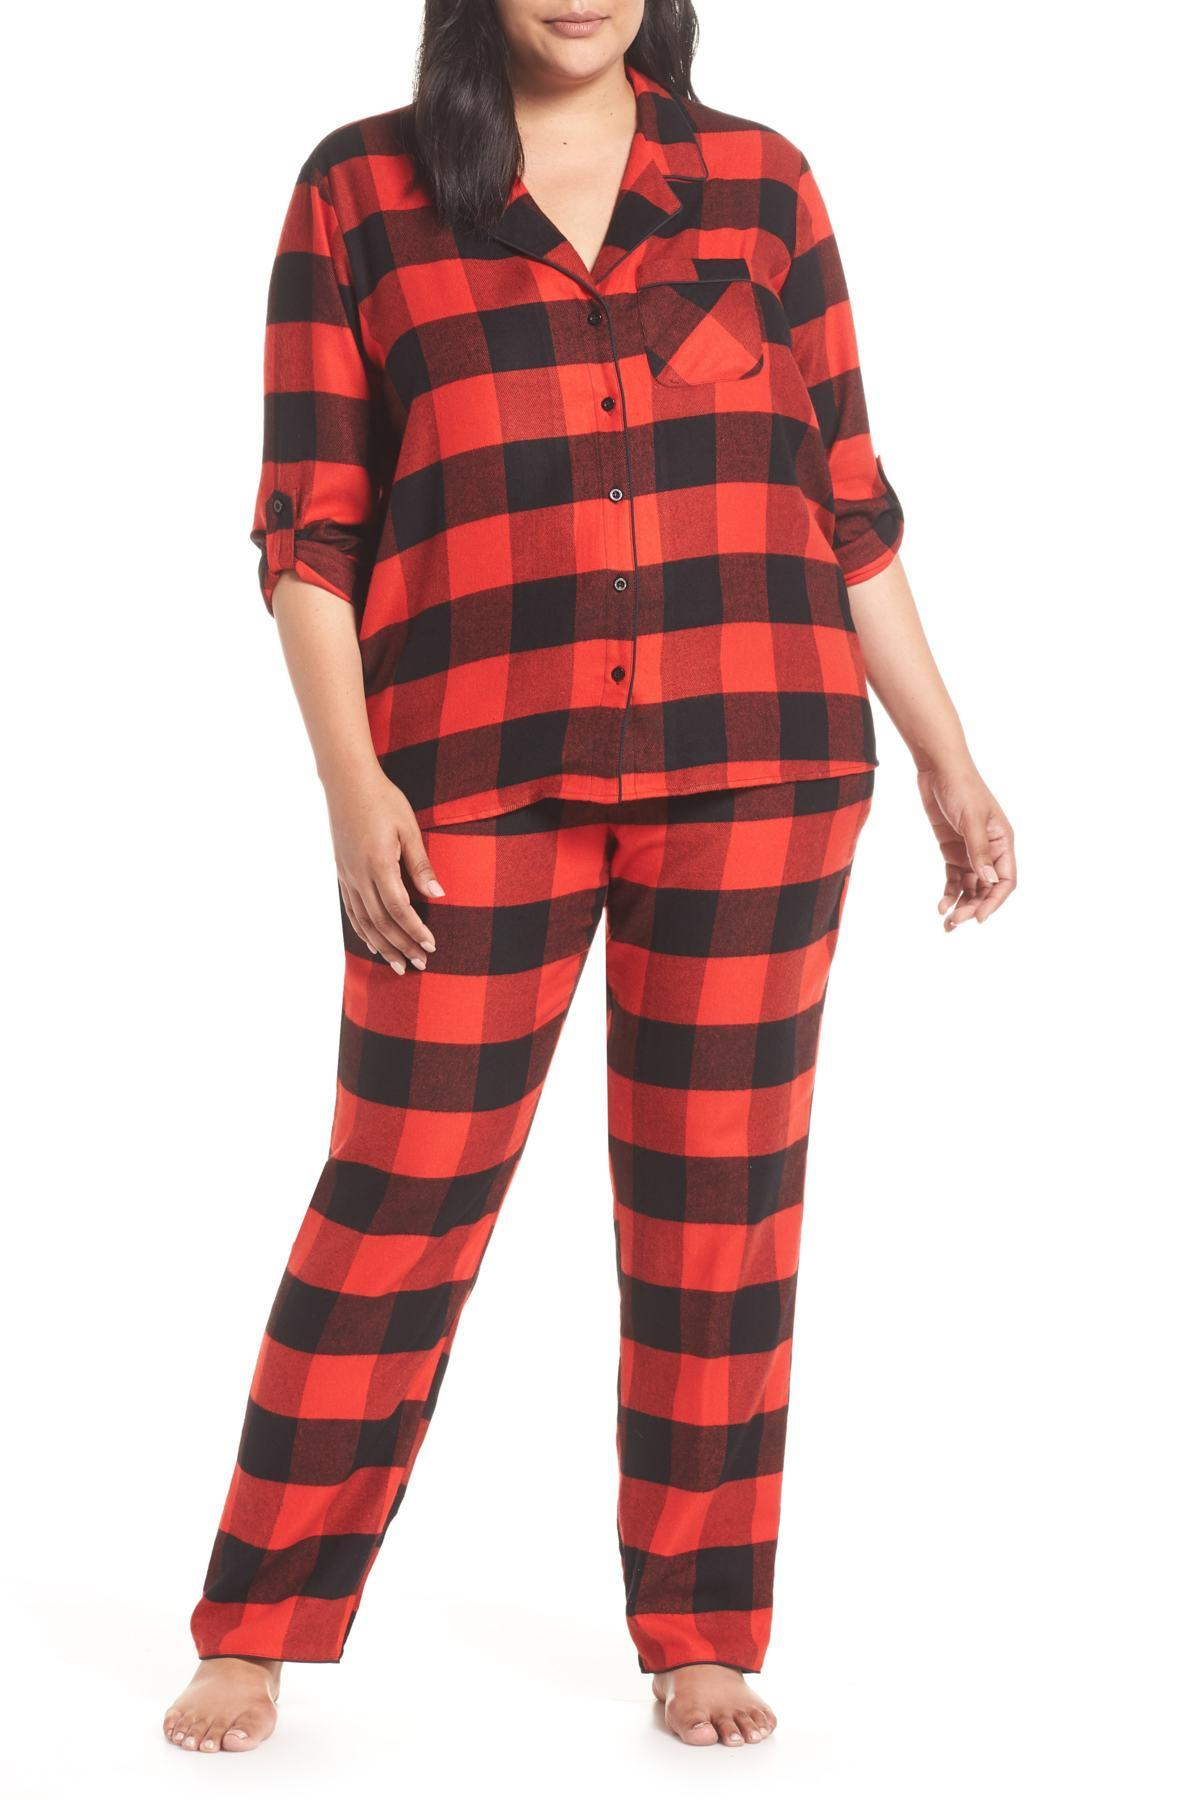 2b2859ca752ba Lyst - Nordstrom Starlight Plaid Flannel Pajamas (plus Size) in Red ...